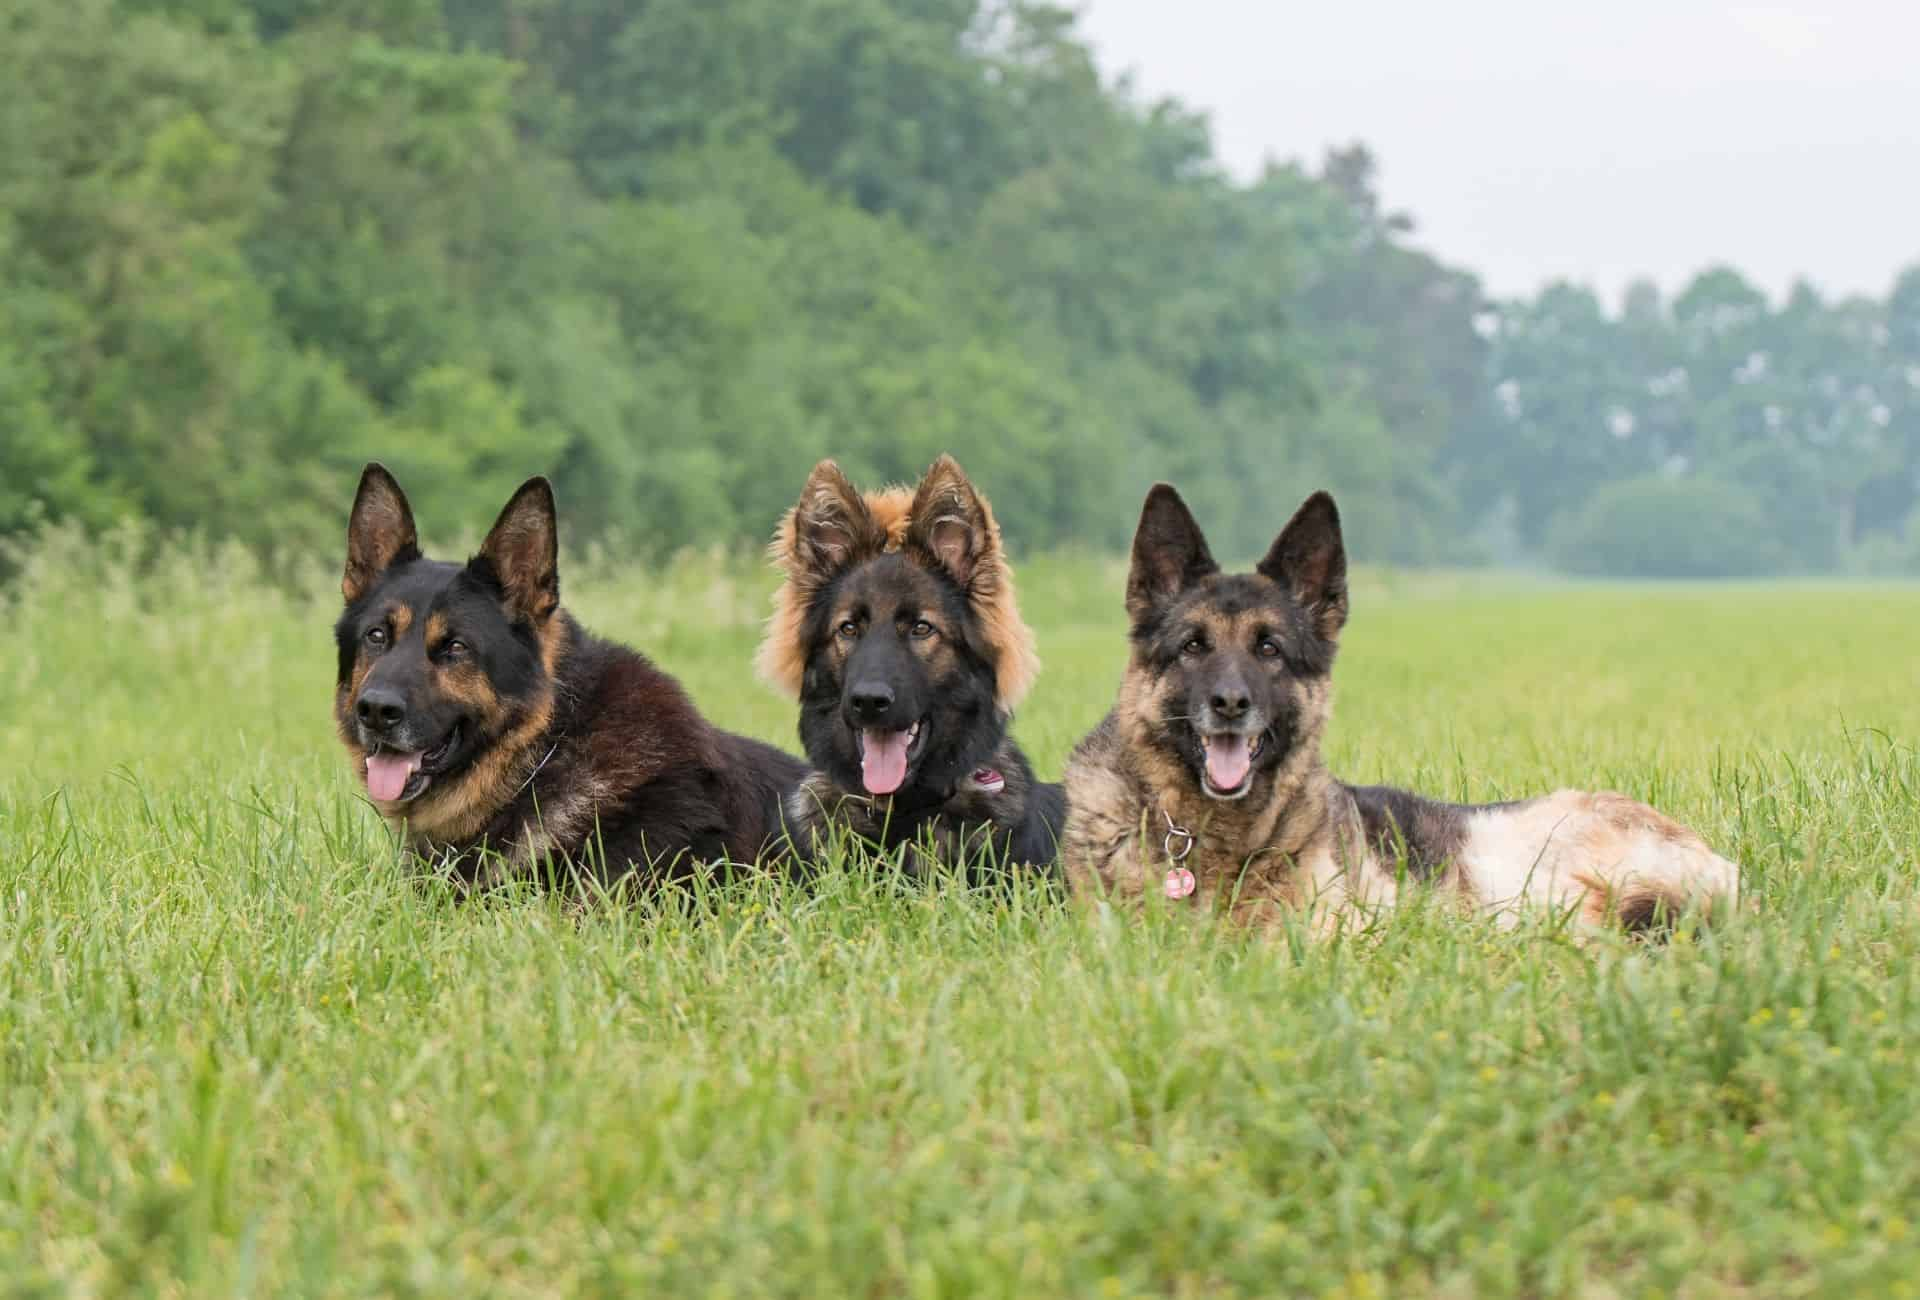 Three German Shepherds in various sable or black and tan colors with long and short coats.